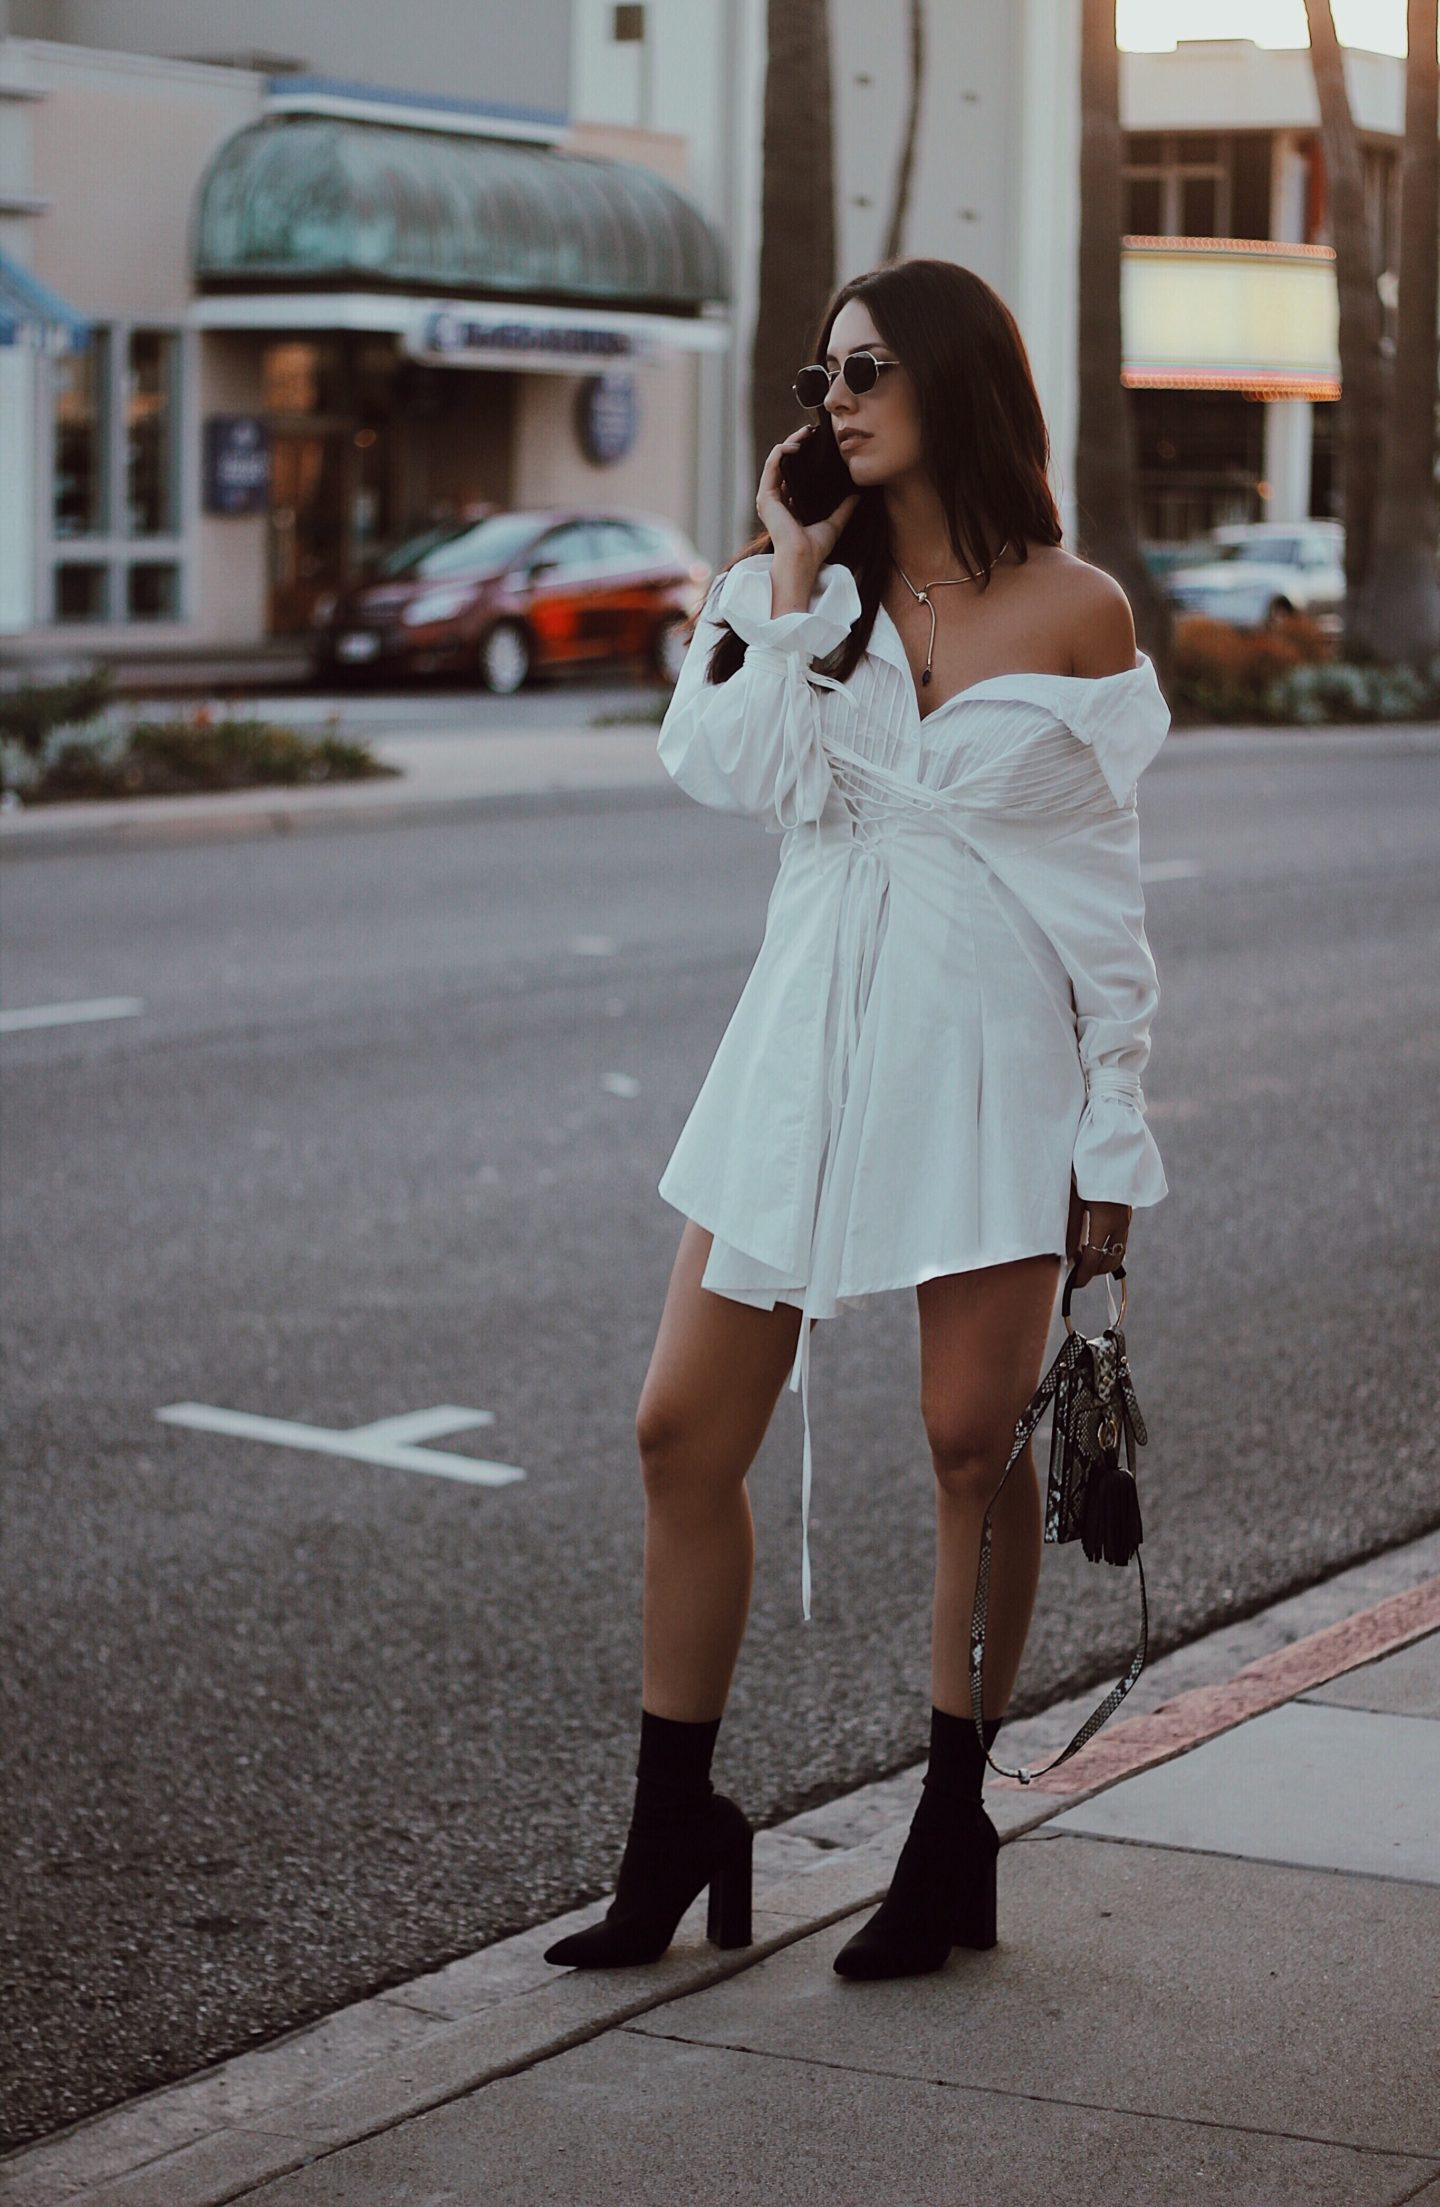 leather to lunch Little White Structured Dress